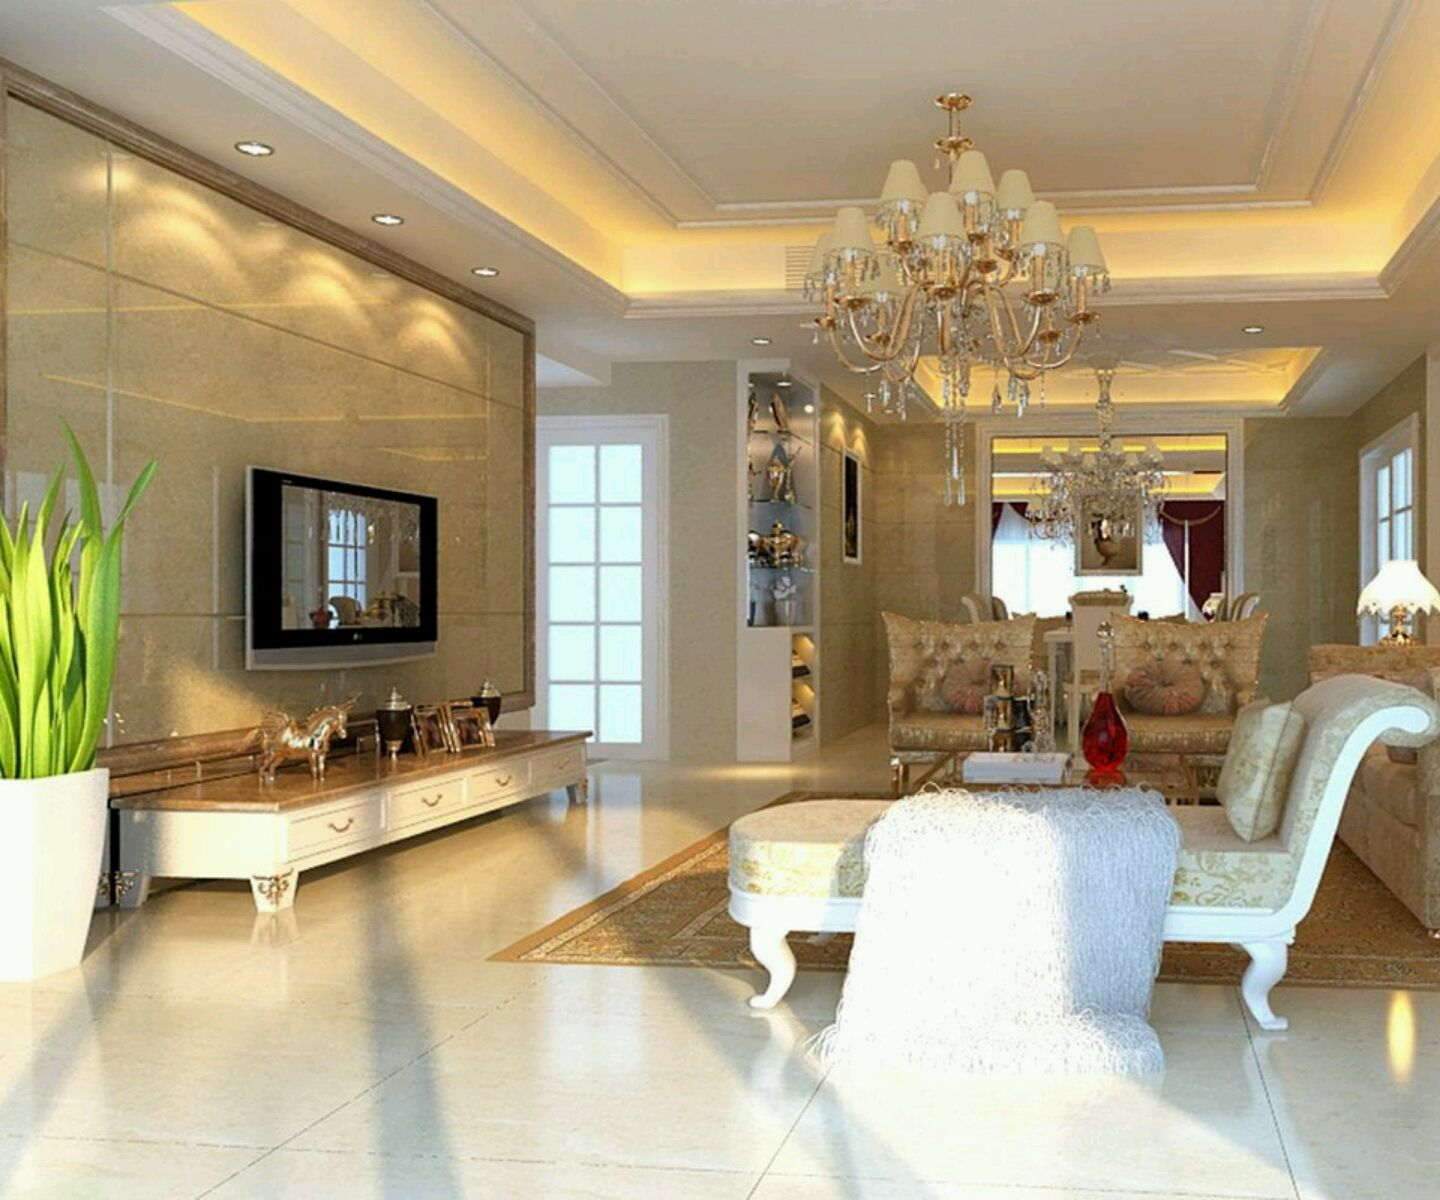 Interior Design For Kitchen And Dining: Luxury Homes Interior Decoration Living Room Designs Ideas